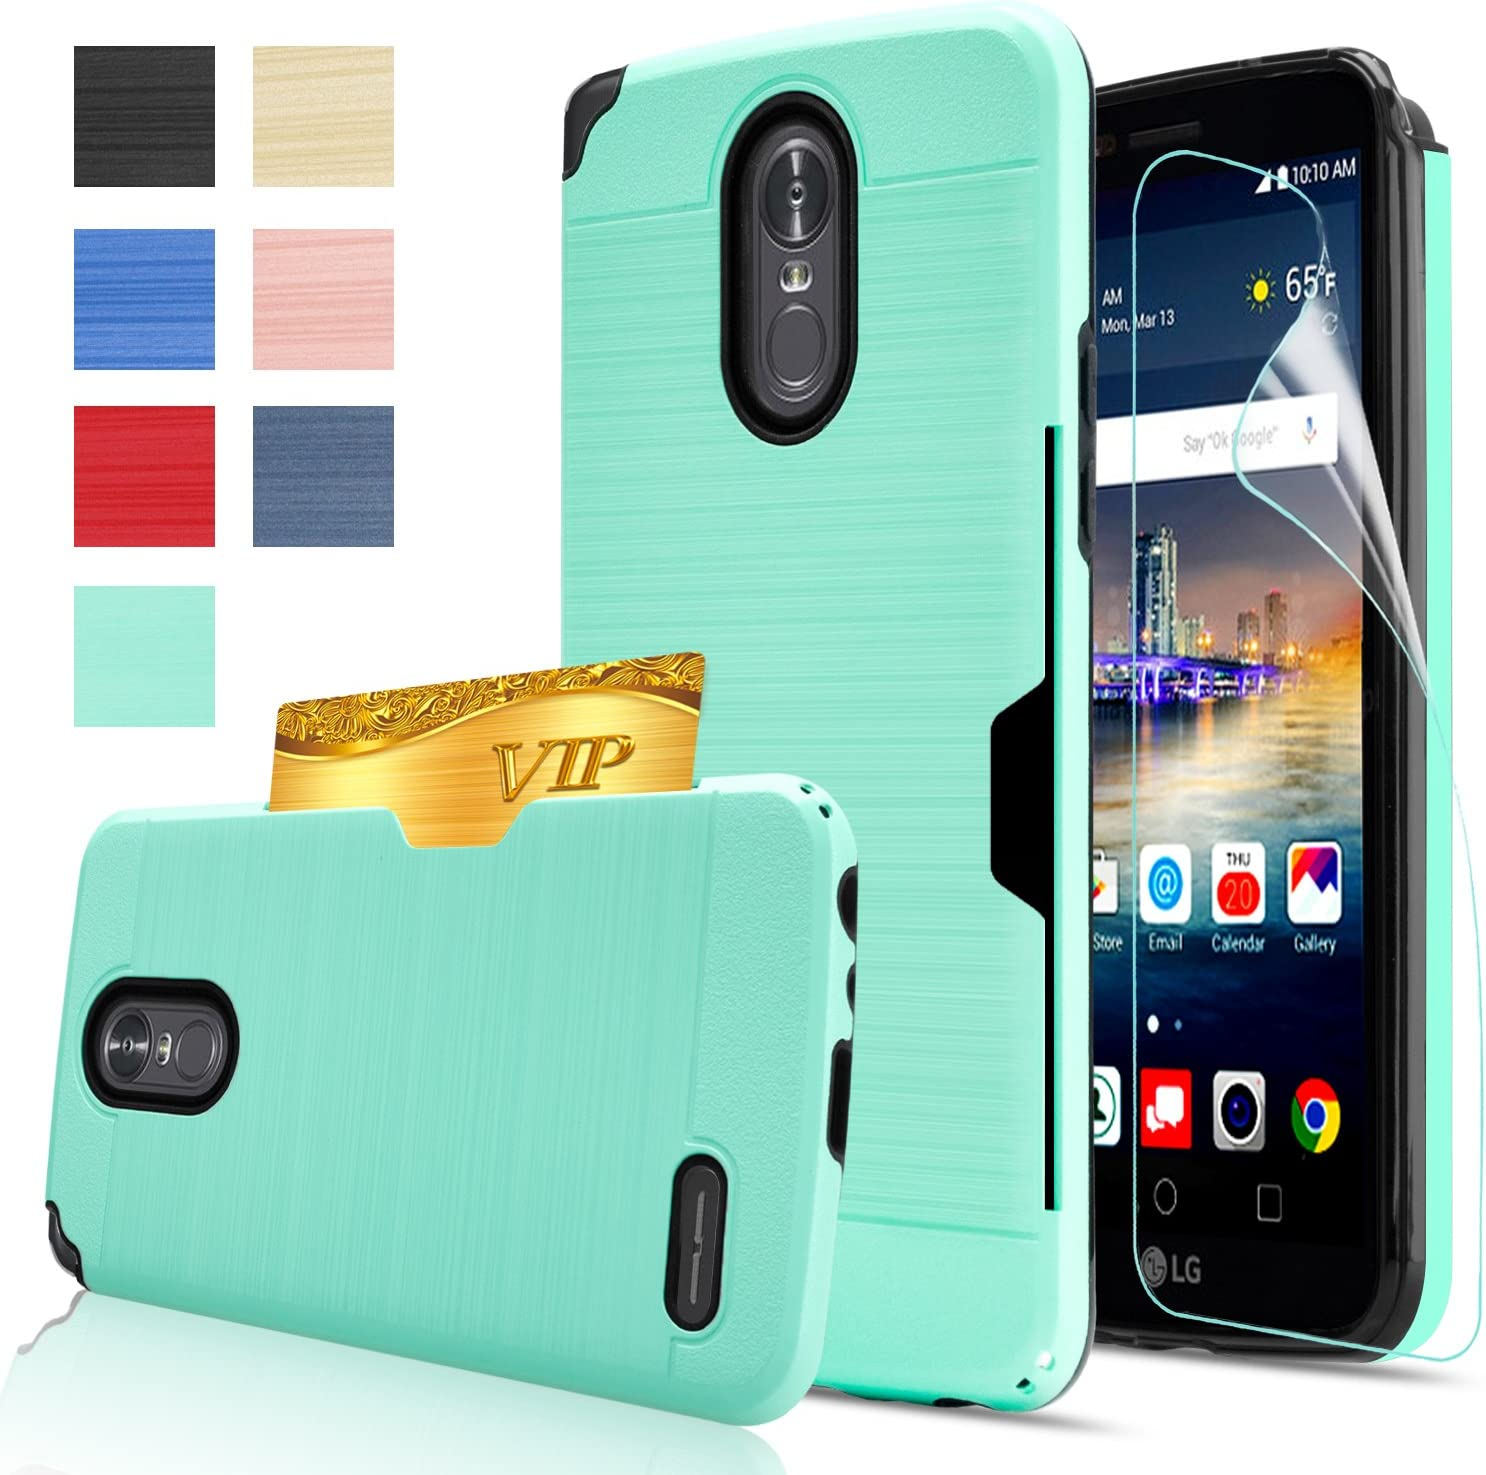 LG Stylo 3 Case,LG Stylo 3 Plus Case,LG Stylus 3 case with HD Screen Protector,AnoKe[Card Slots Holder][Not Wallet] Plastic TPU Hybrid Shockproof for LG LS777 KC2 Mint